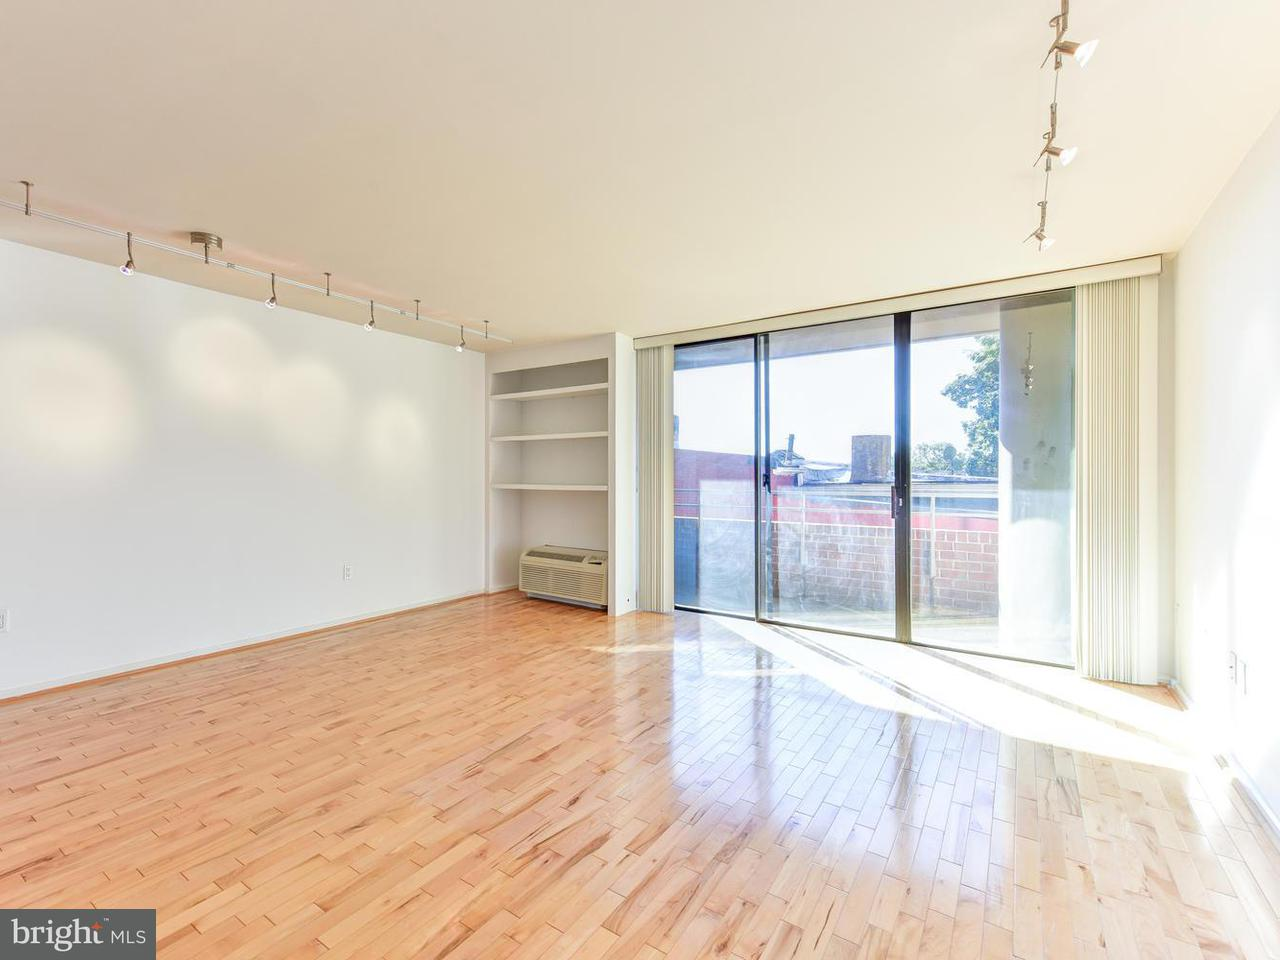 Condominium for Sale at 2141 P St NW #404 Washington, District Of Columbia 20037 United States